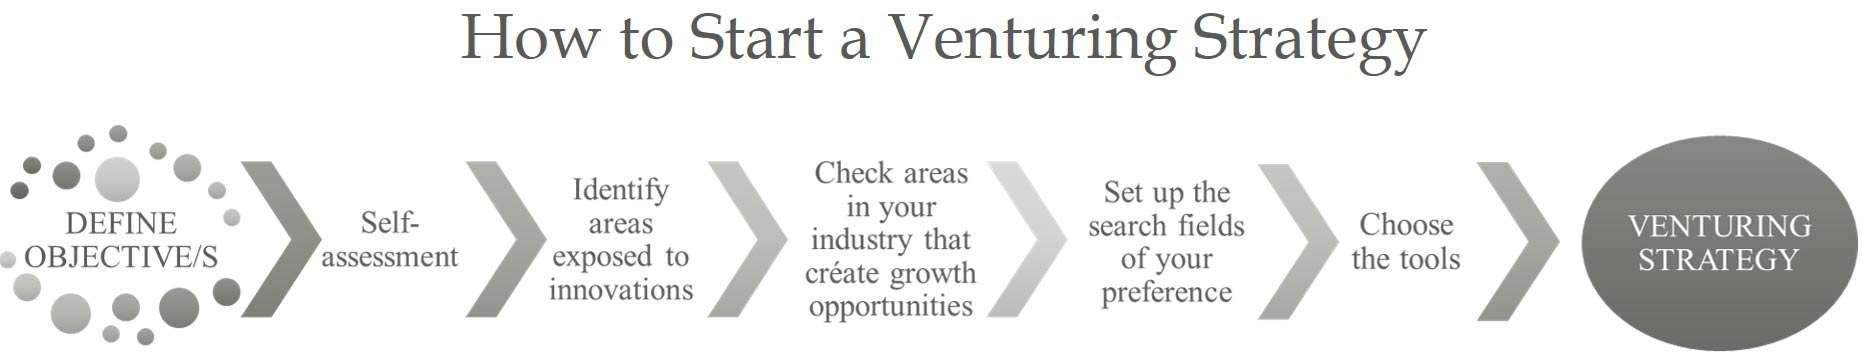 How to start a Venturing Strategy